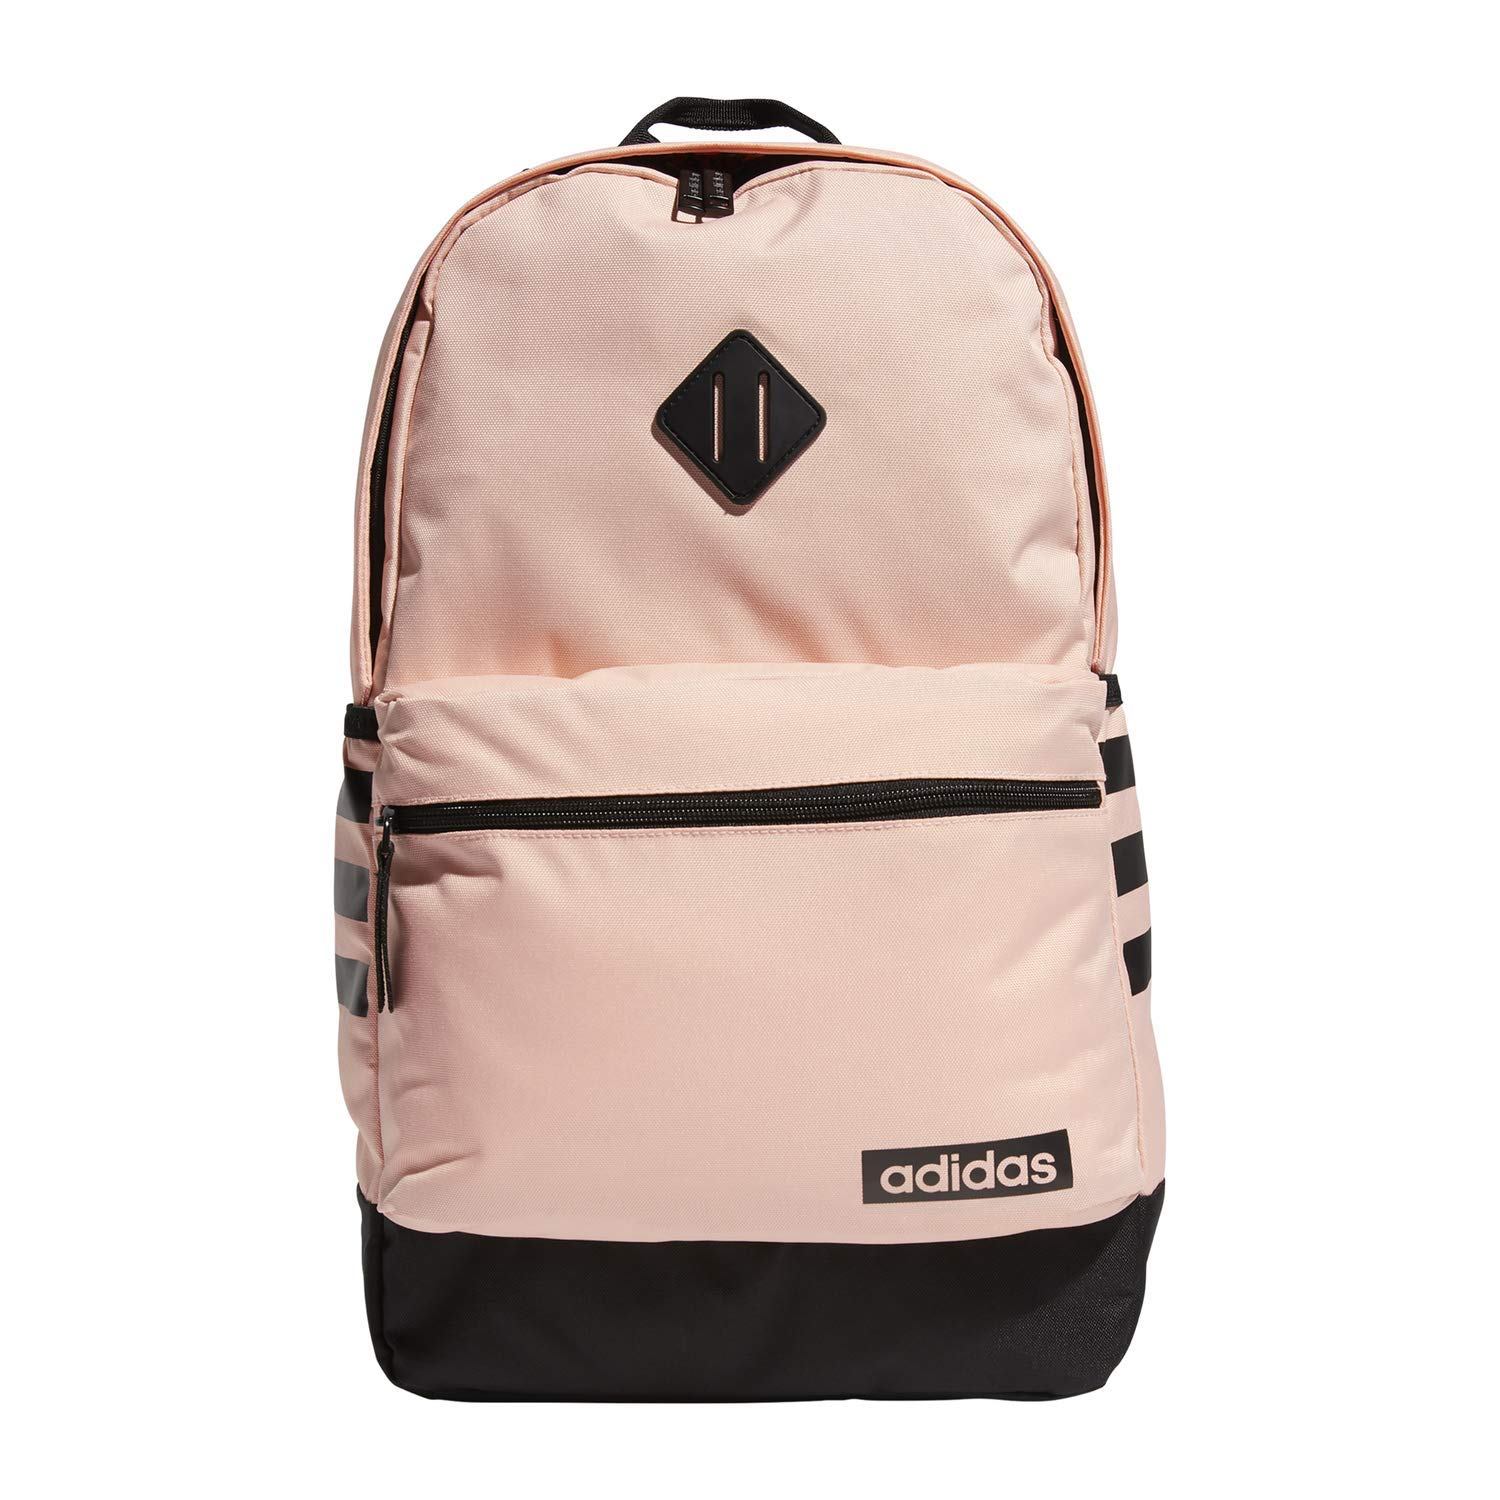 adidas Unisex Classic 3S Backpack, Glow Pink/Black, ONE SIZE by adidas